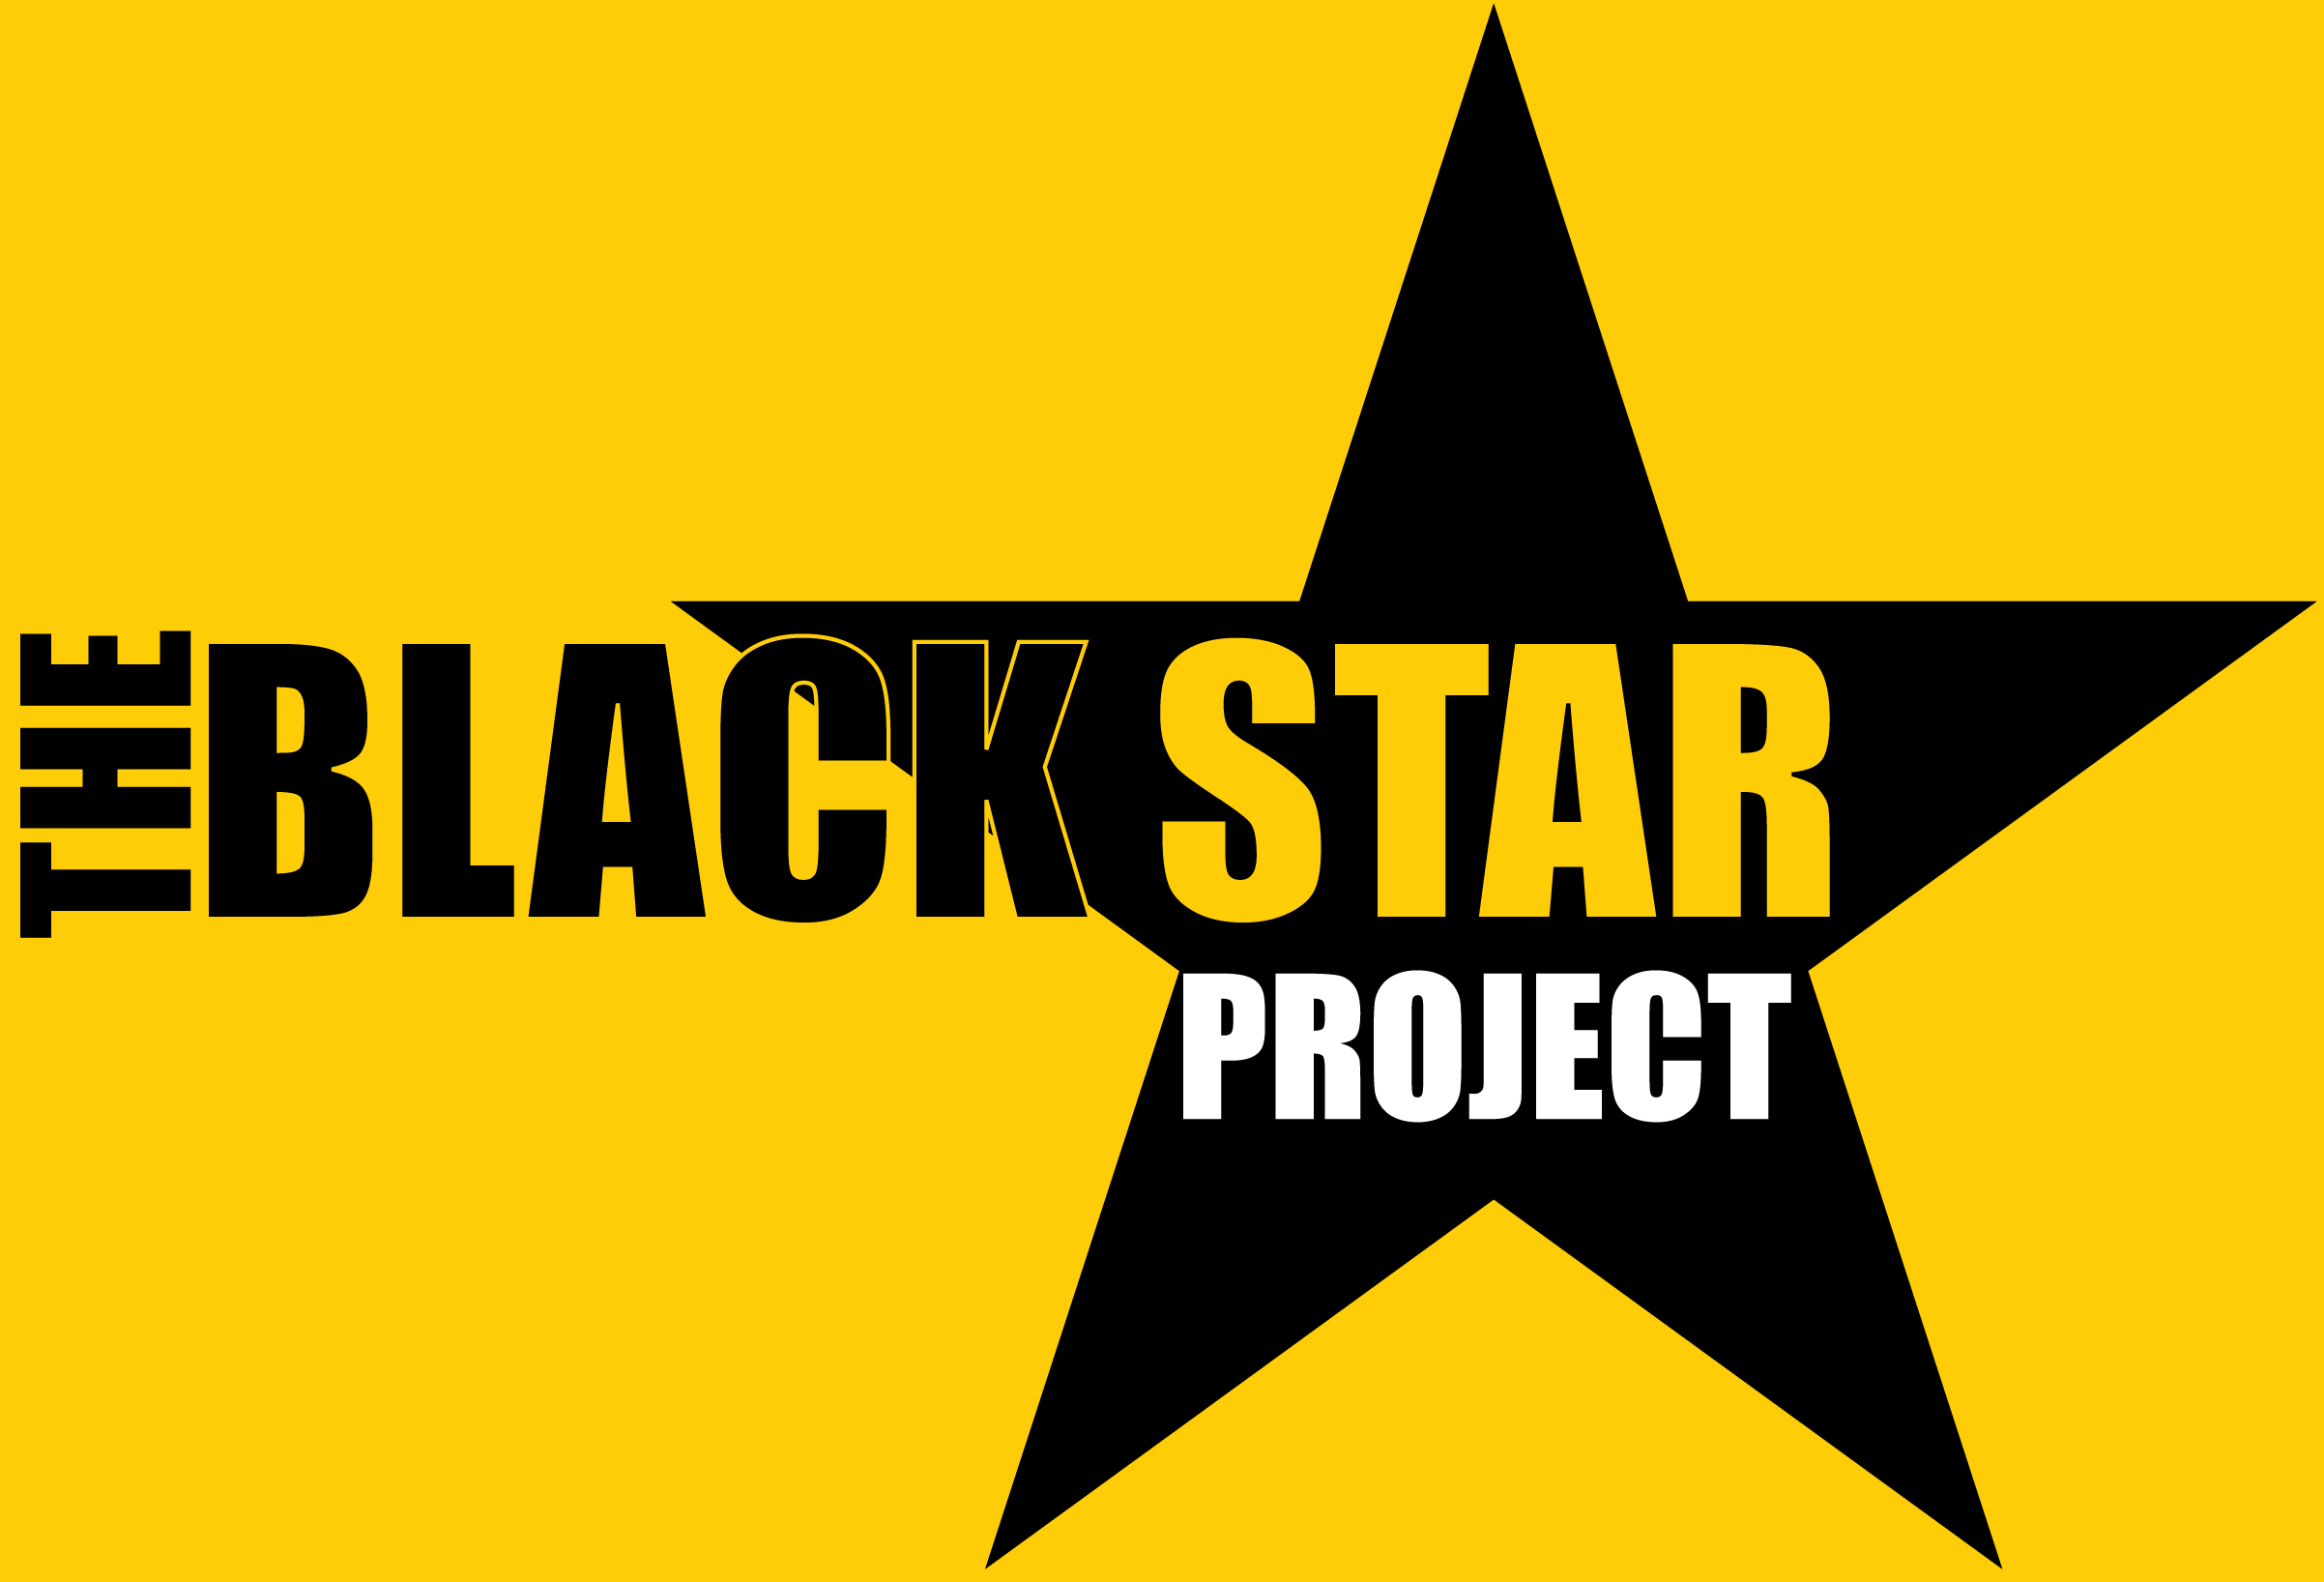 File:Black Star Project logo.png.